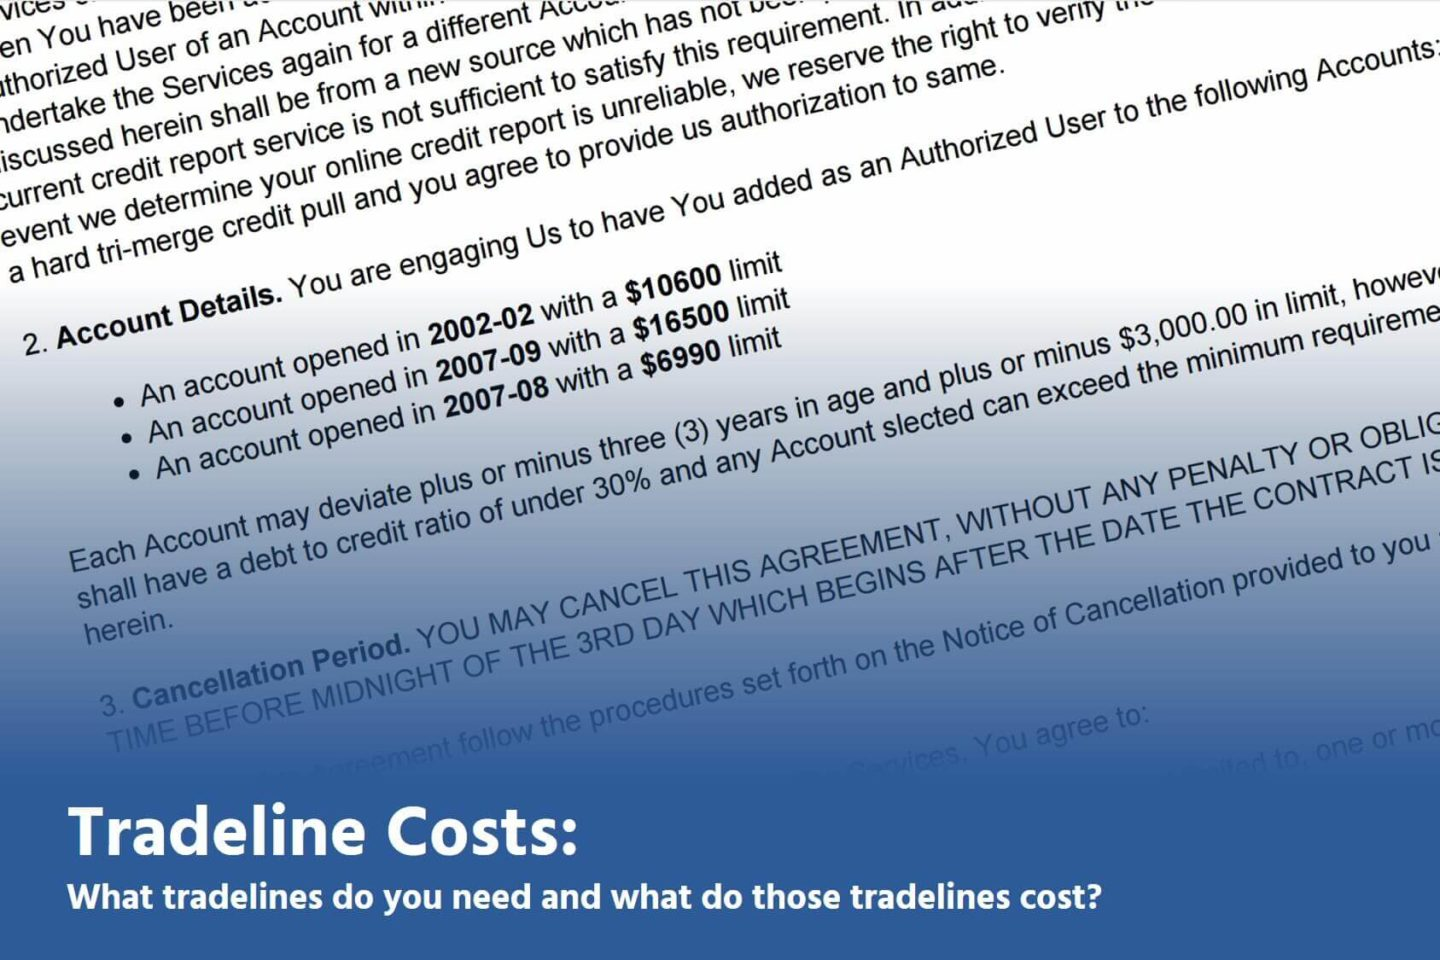 tradelines costs faqs